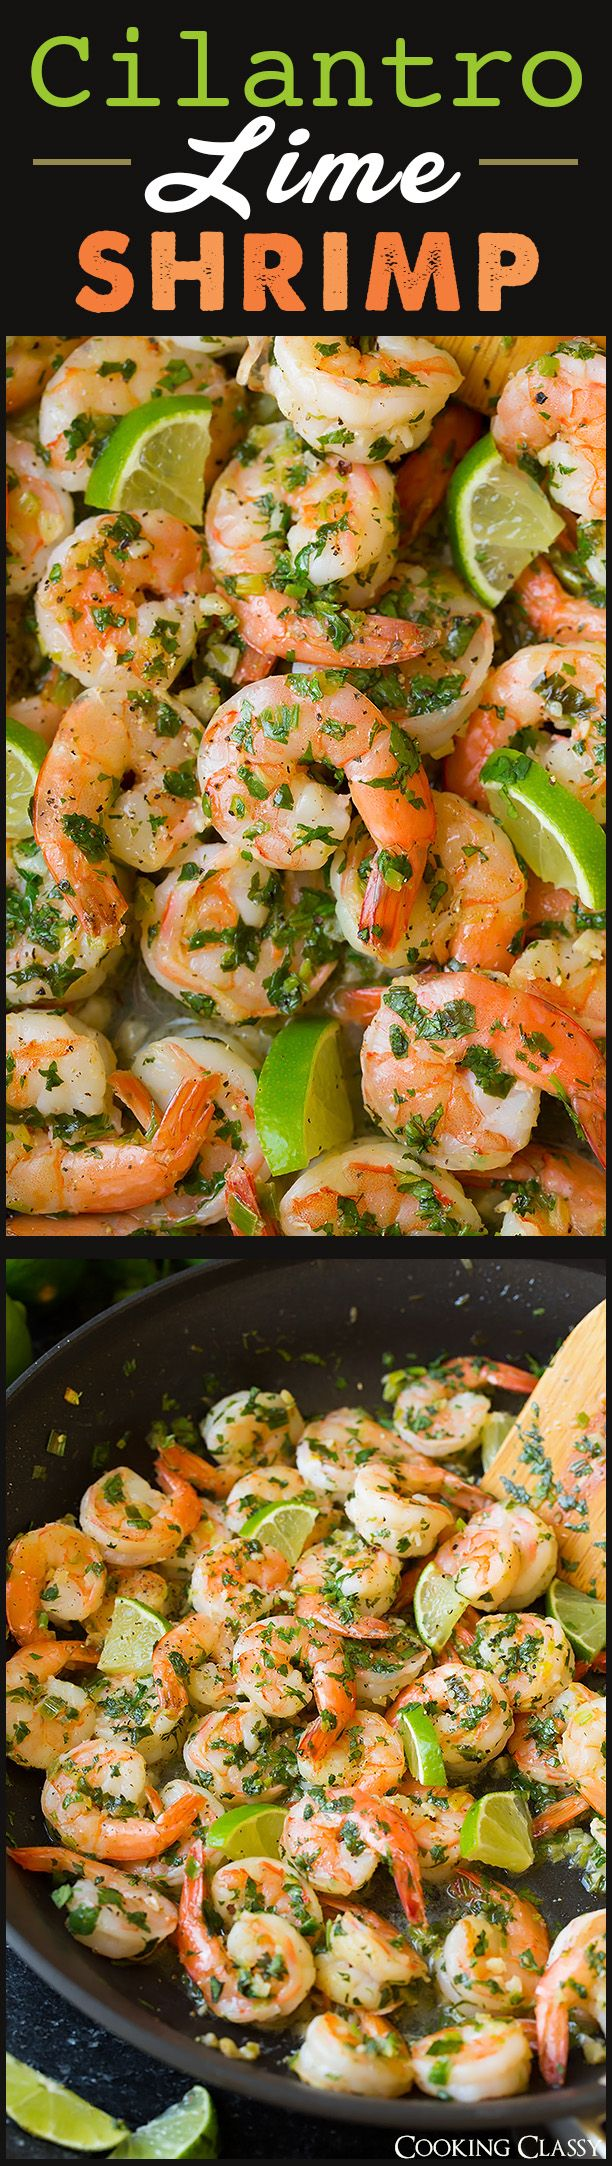 Cilantro Lime Shrimp with Coconut Rice - Loved this! So easy and great combo!